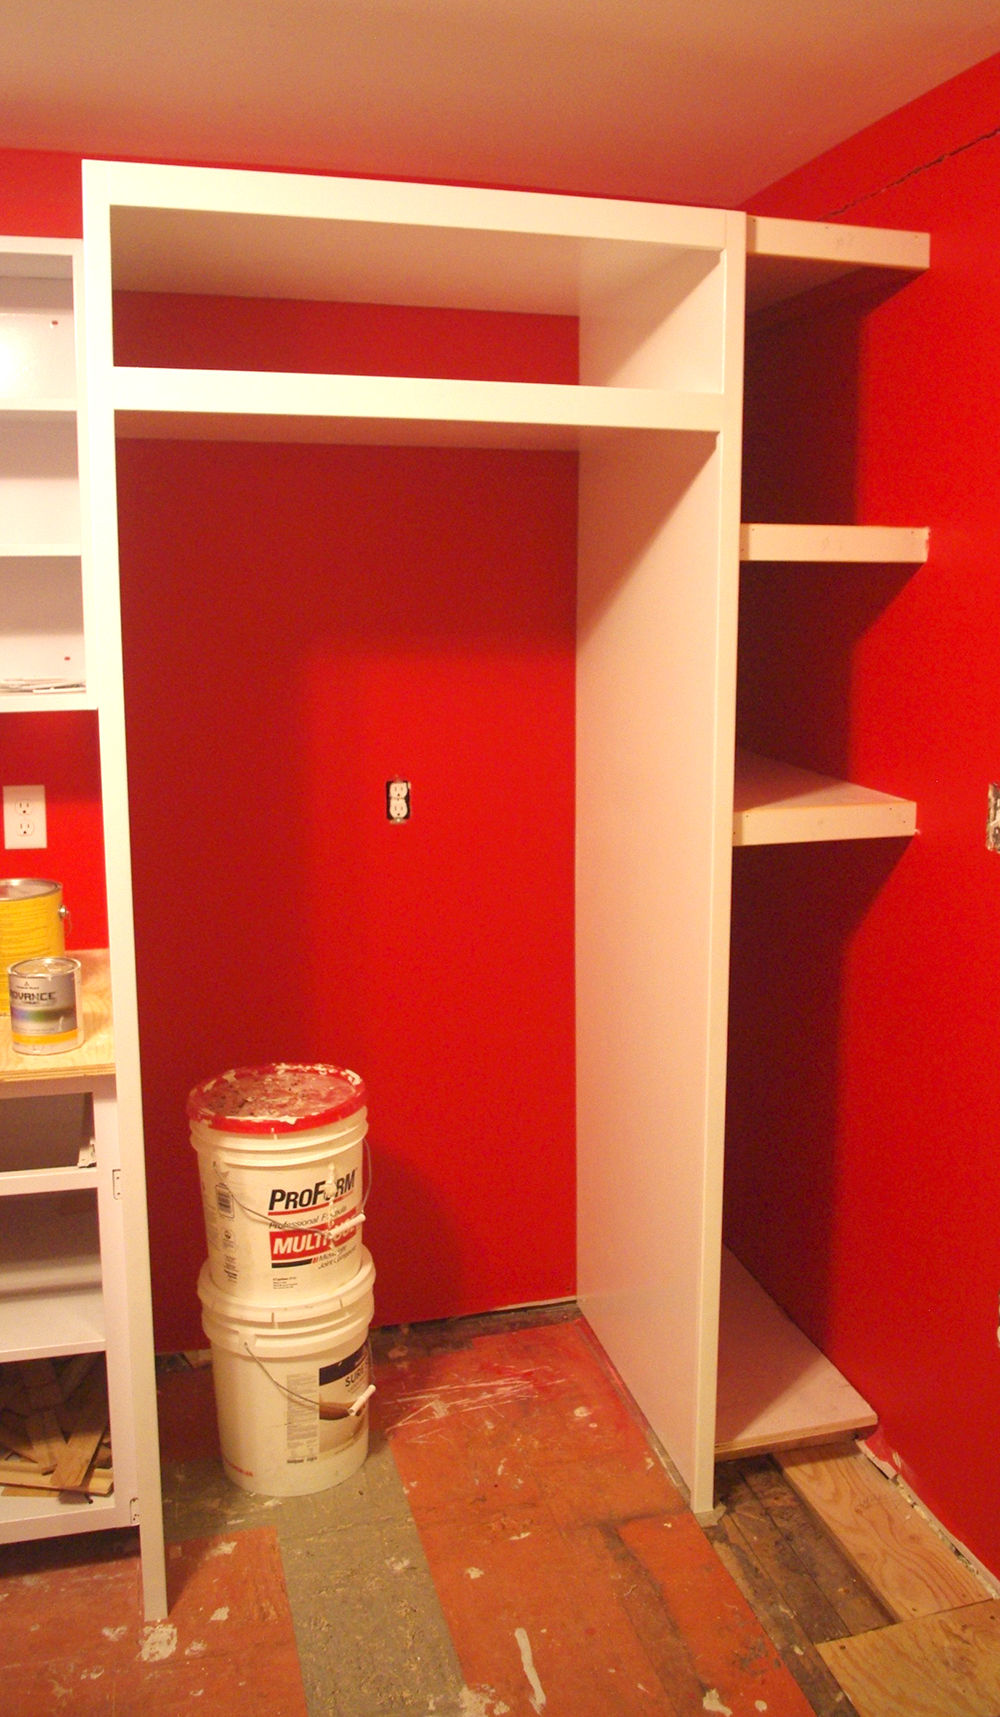 Our new fridge surround and shelves. The shelf above the fridge will eventually get doors and hardware to match the rest of the cabinetry.